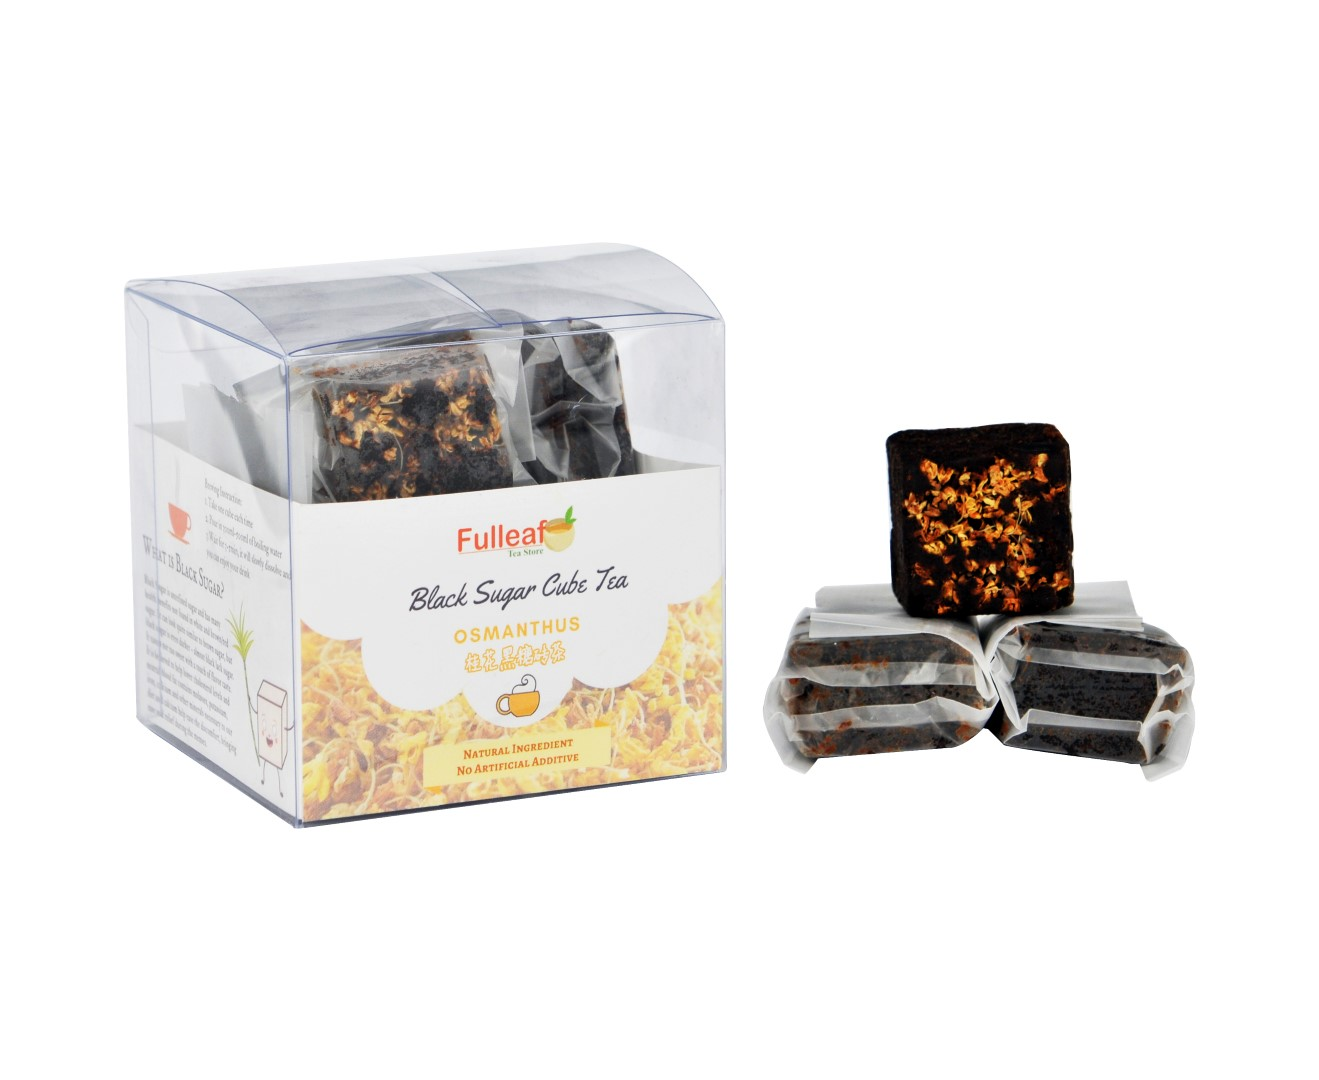 Osmanthus Black Sugar Cube Tea